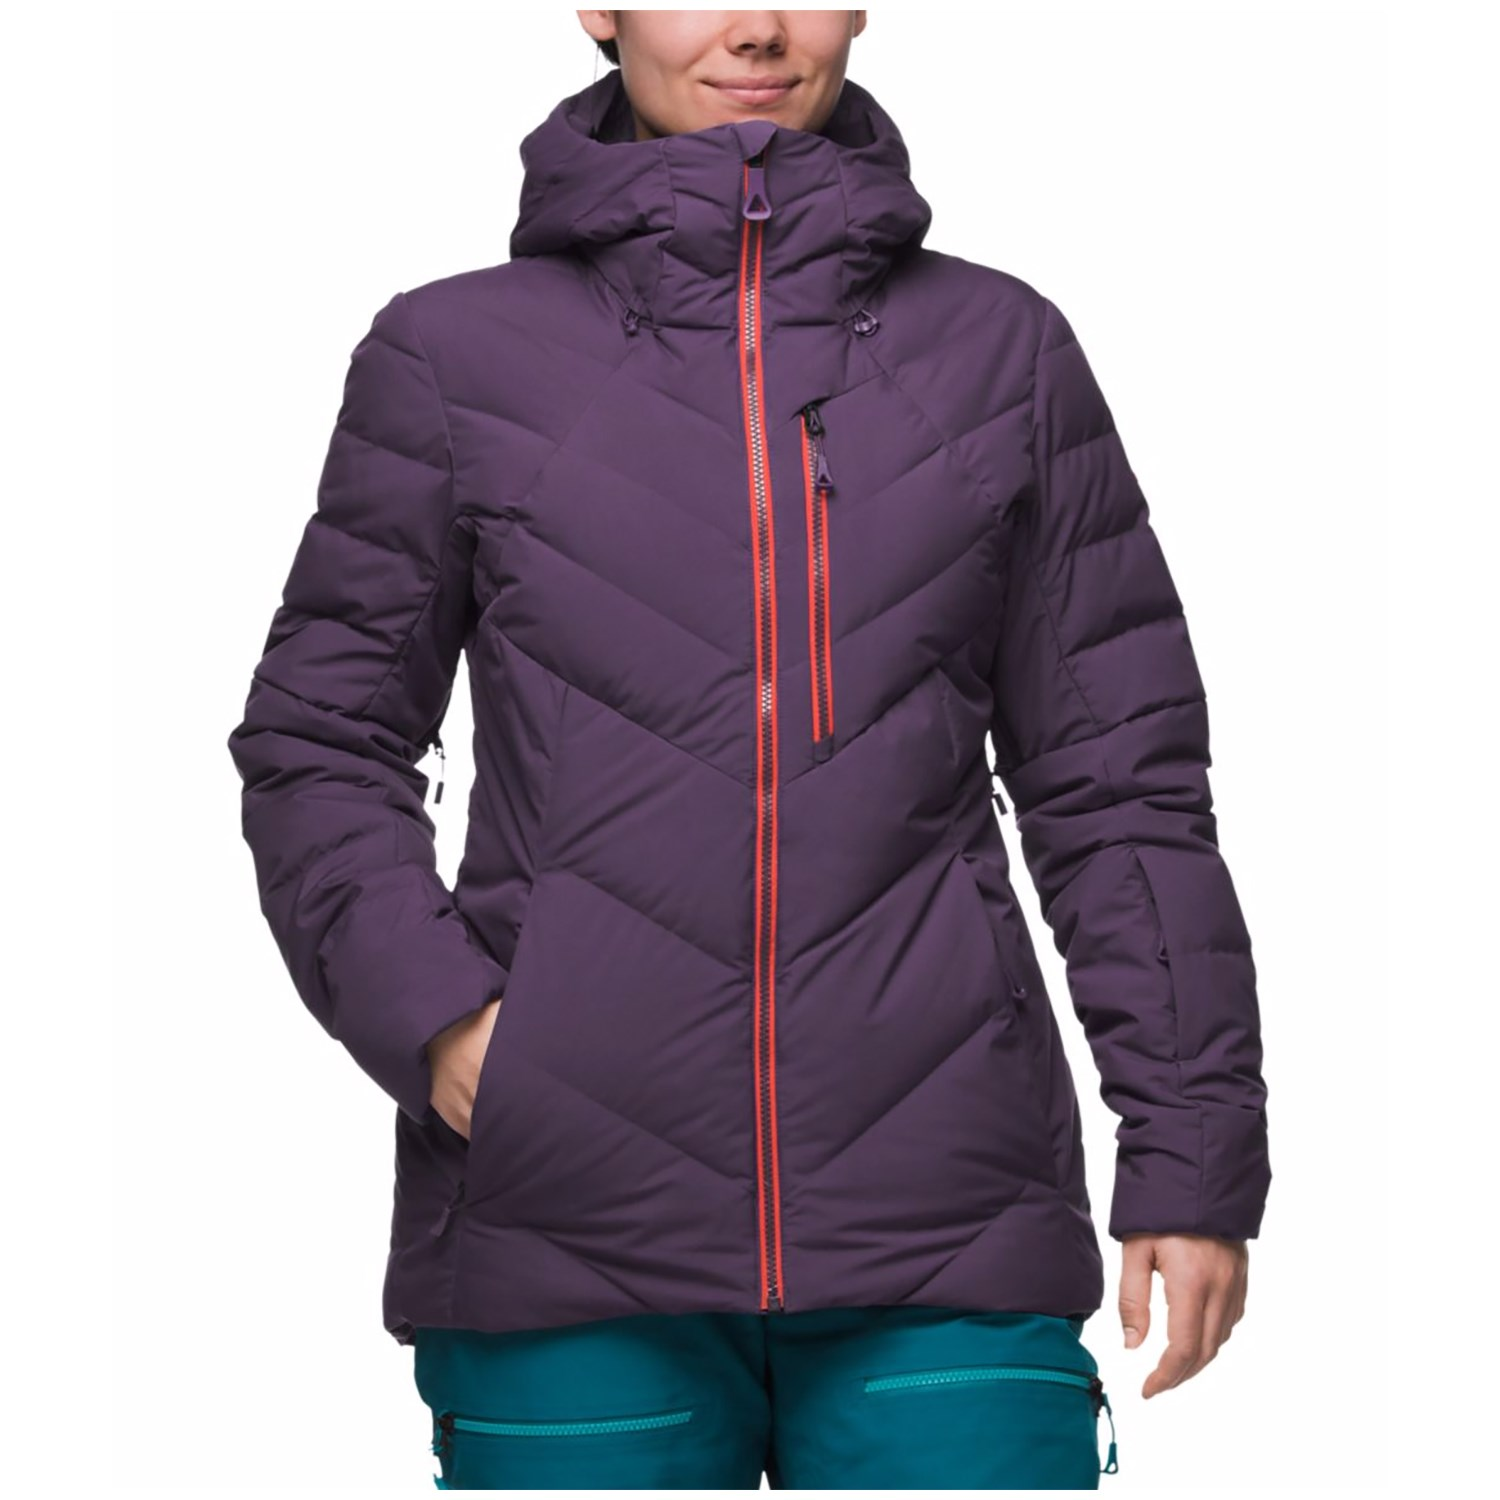 c373f01c8 The North Face Corefire Down Jacket - Women's